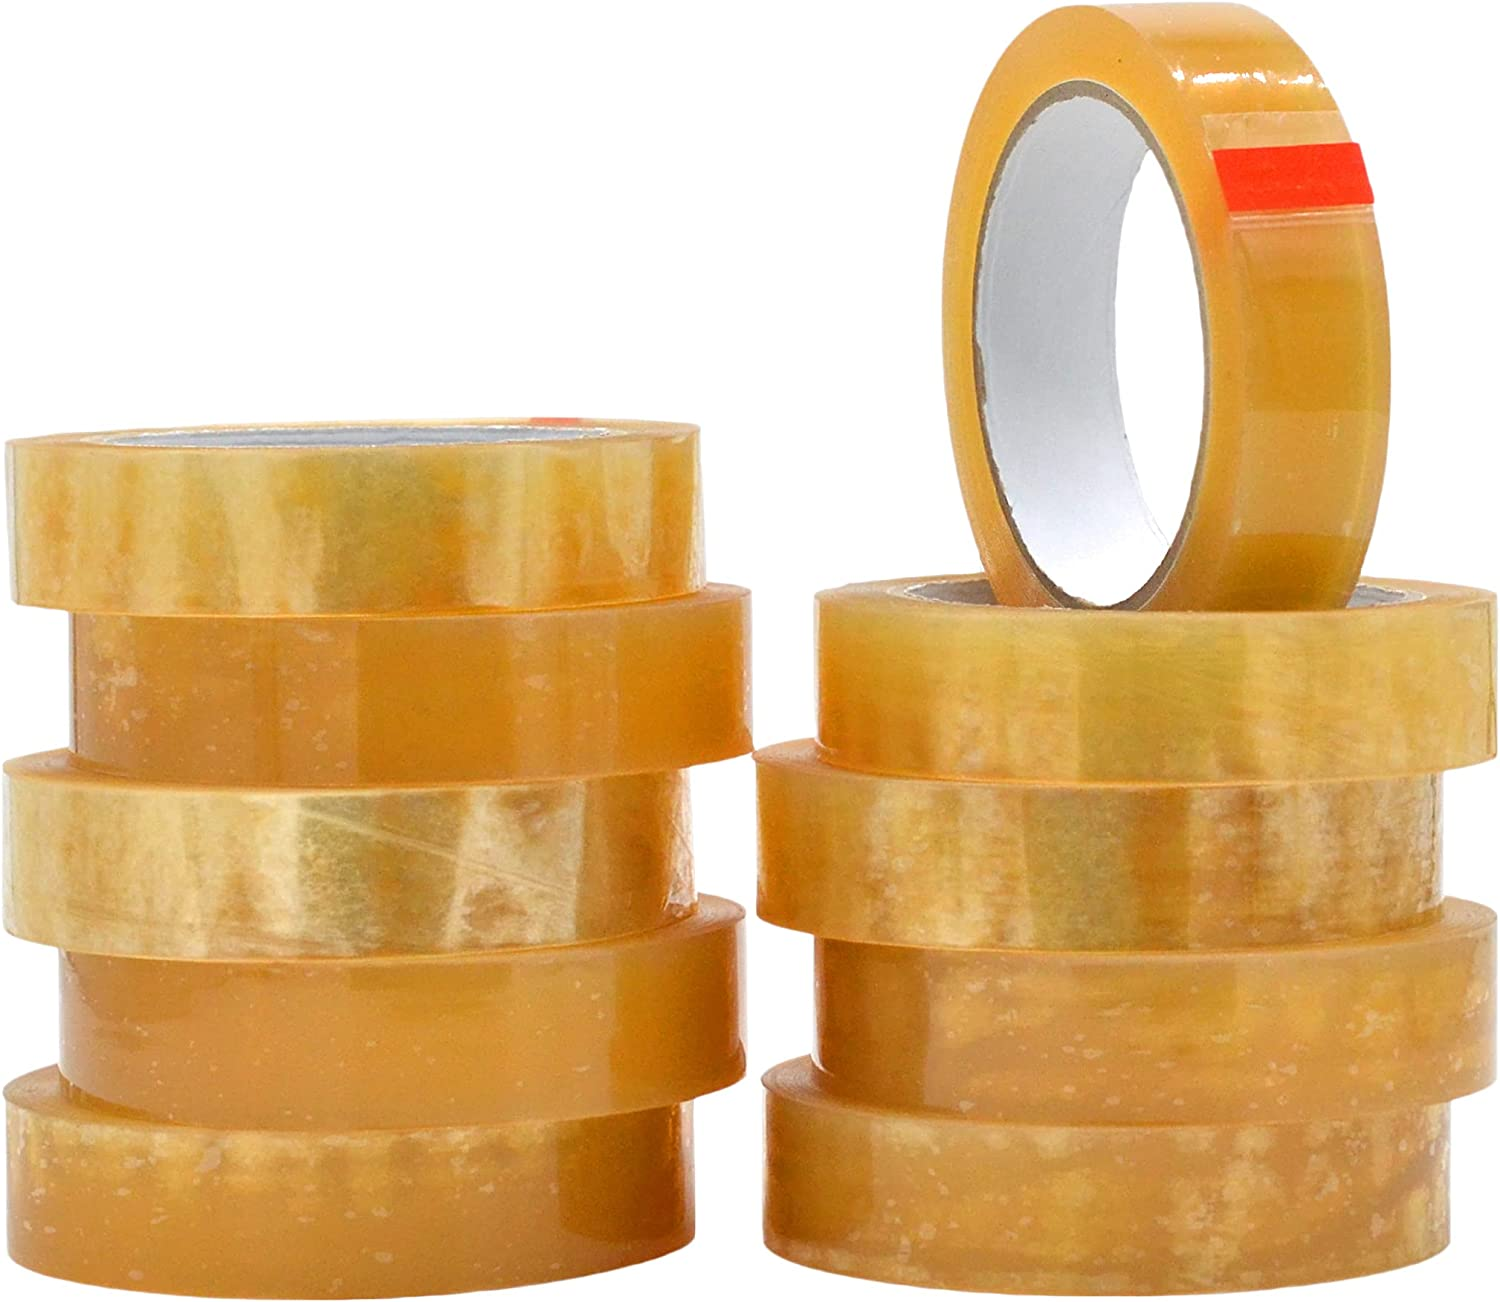 WOD BCST Biodegradable Packaging Tape, Clear, 1 inch x 72 yds (Pack of 10) Cellophane Stationery Eco Friendly Tape for Carton Sealing, Moving, Shipping, & Office